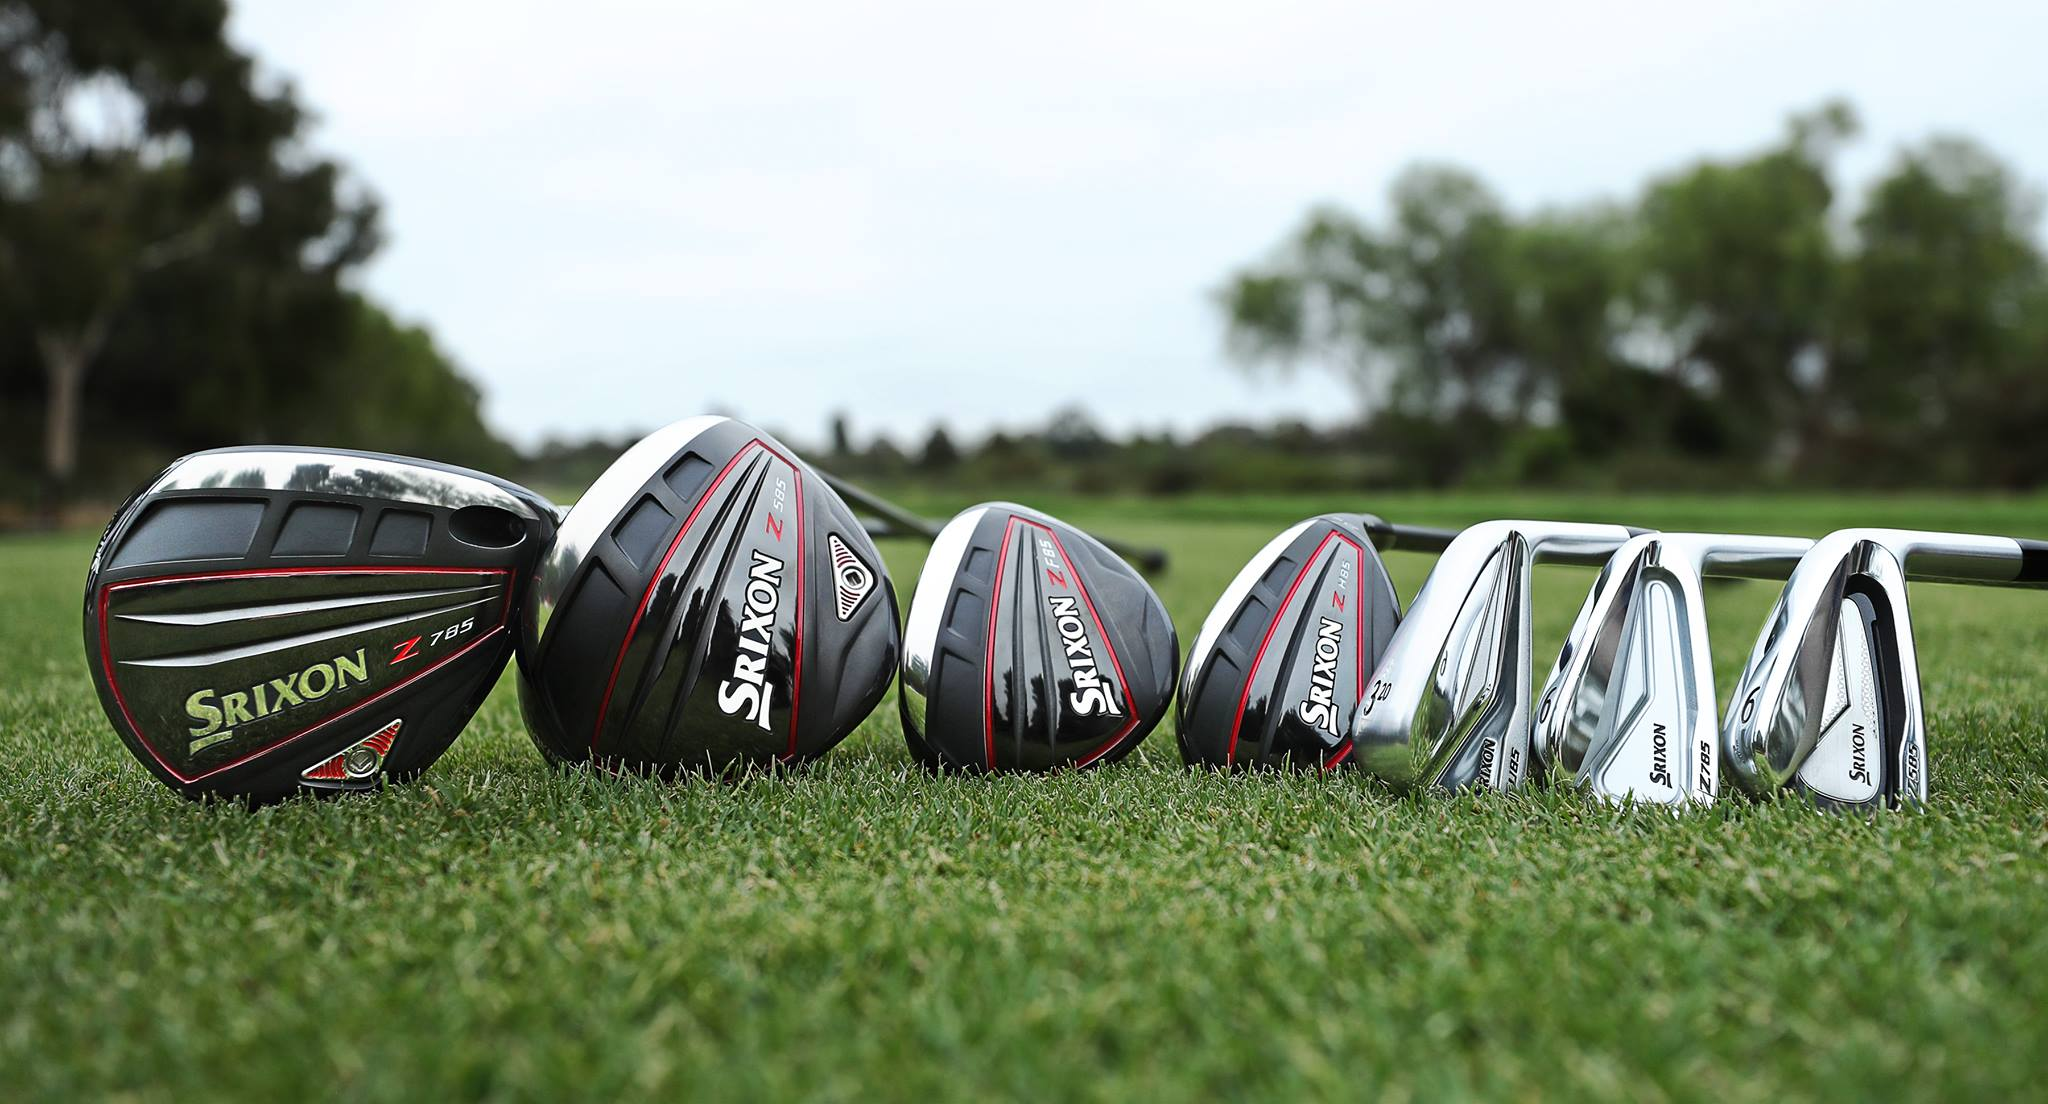 Srixon Golf Demo Day at Lincoln Country Club